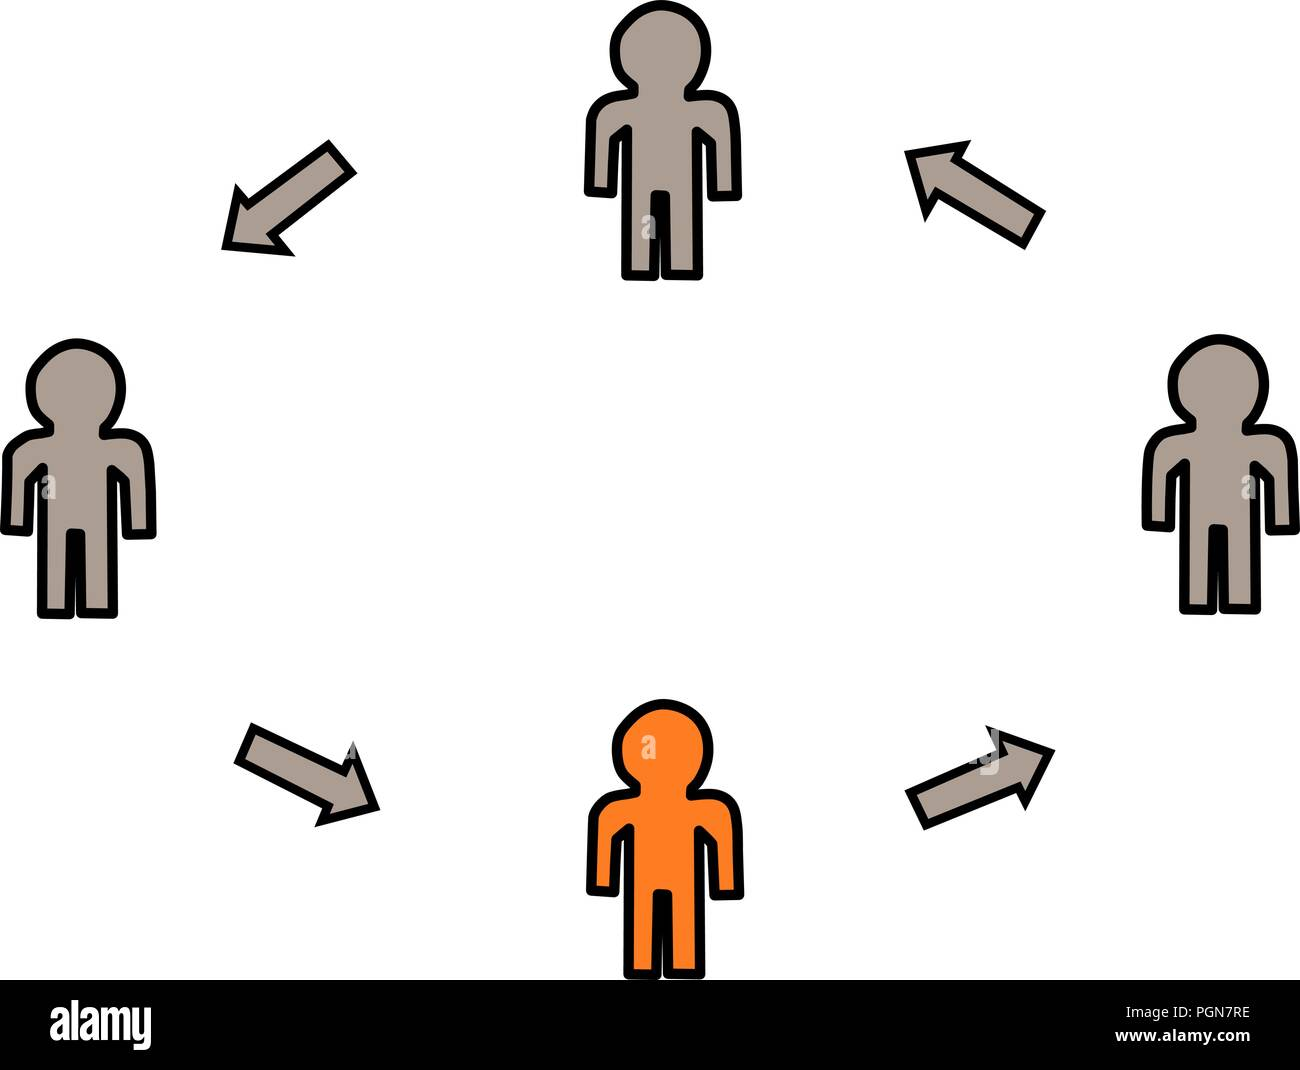 Chart for people to integrate - Stock Vector